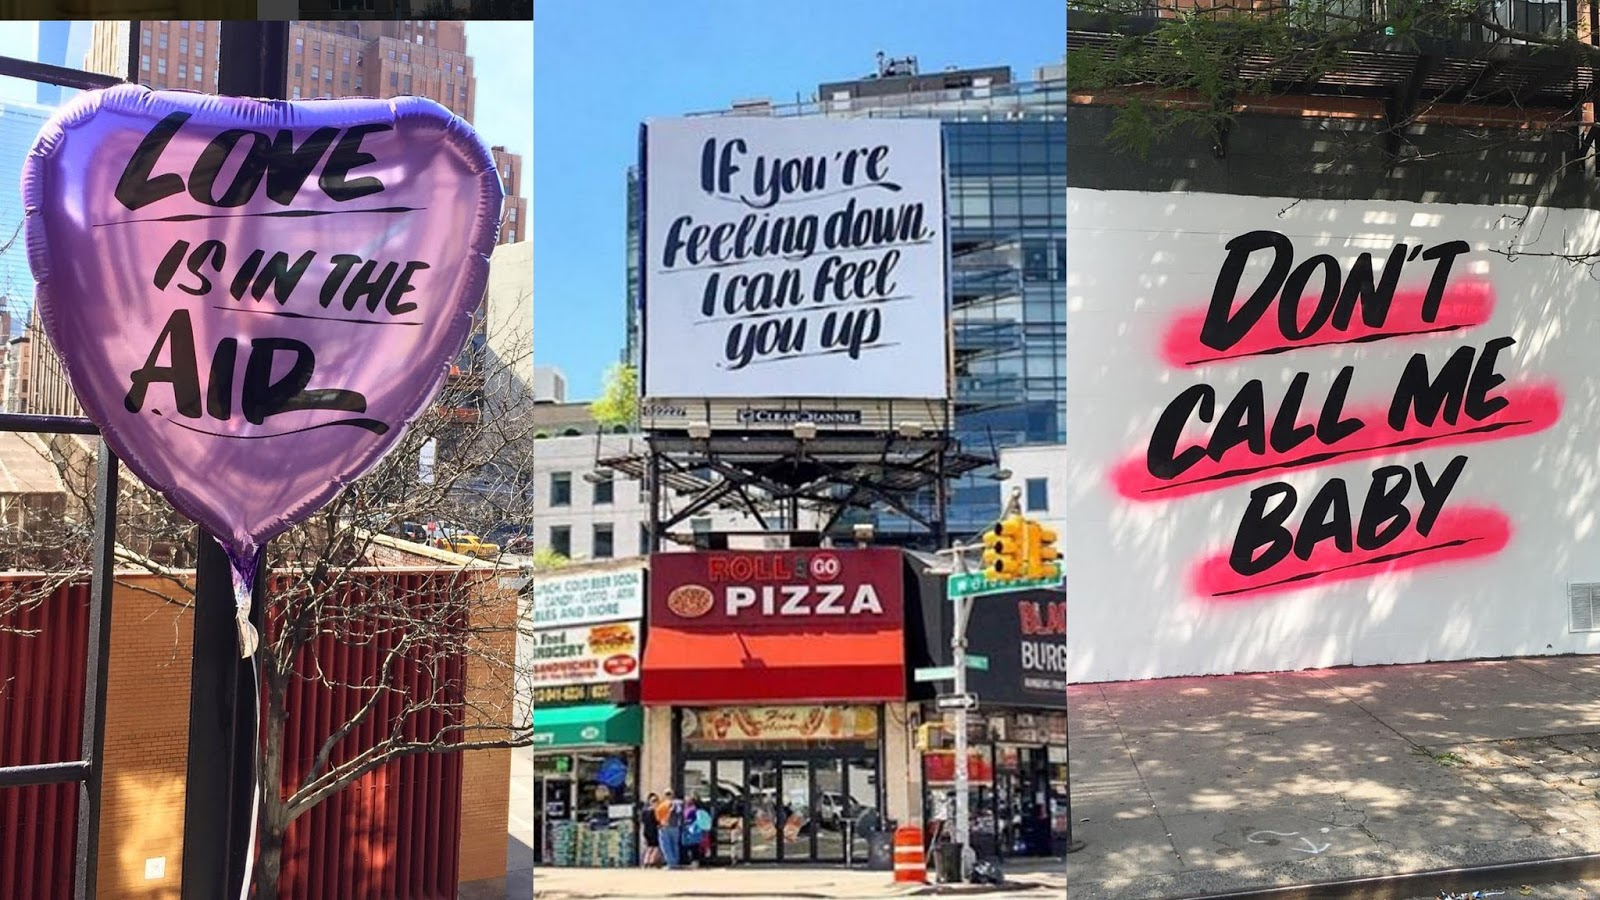 7 NYC instagram accounts to follow - baron von fancy